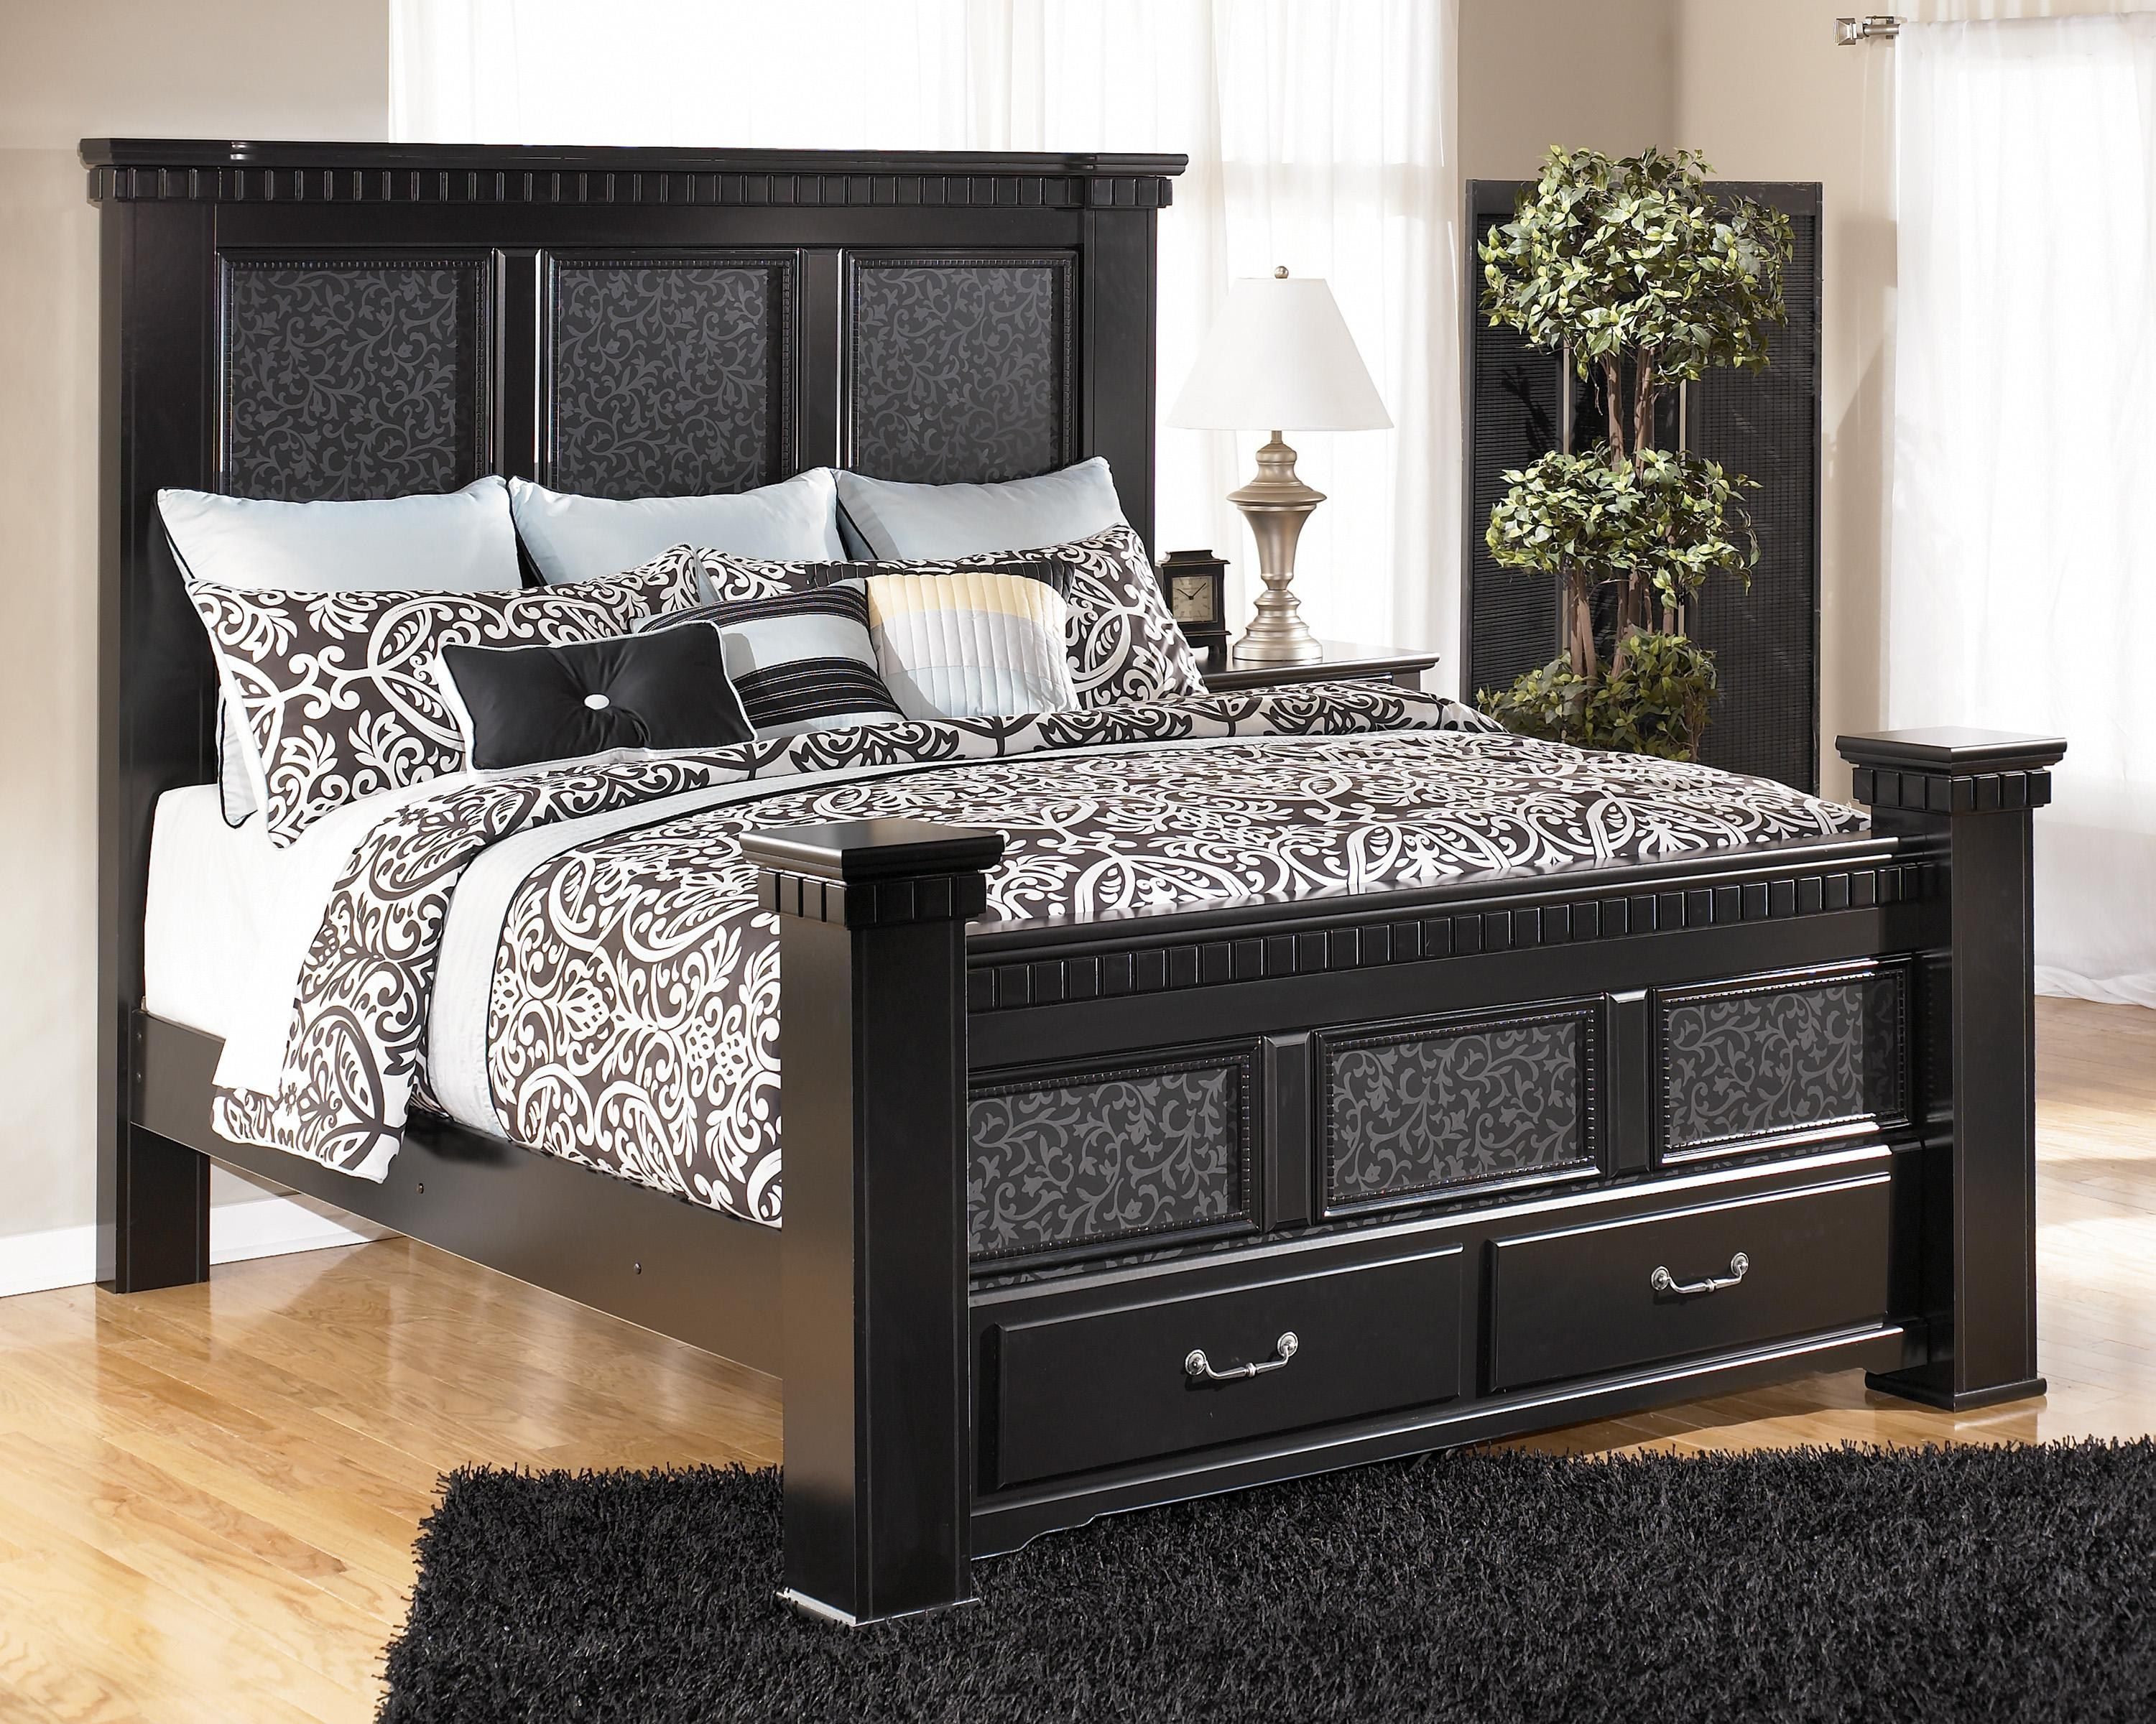 Morris Bedroom Furniture Ashley Furniture Beds Are Offered To You In Some Sources Before